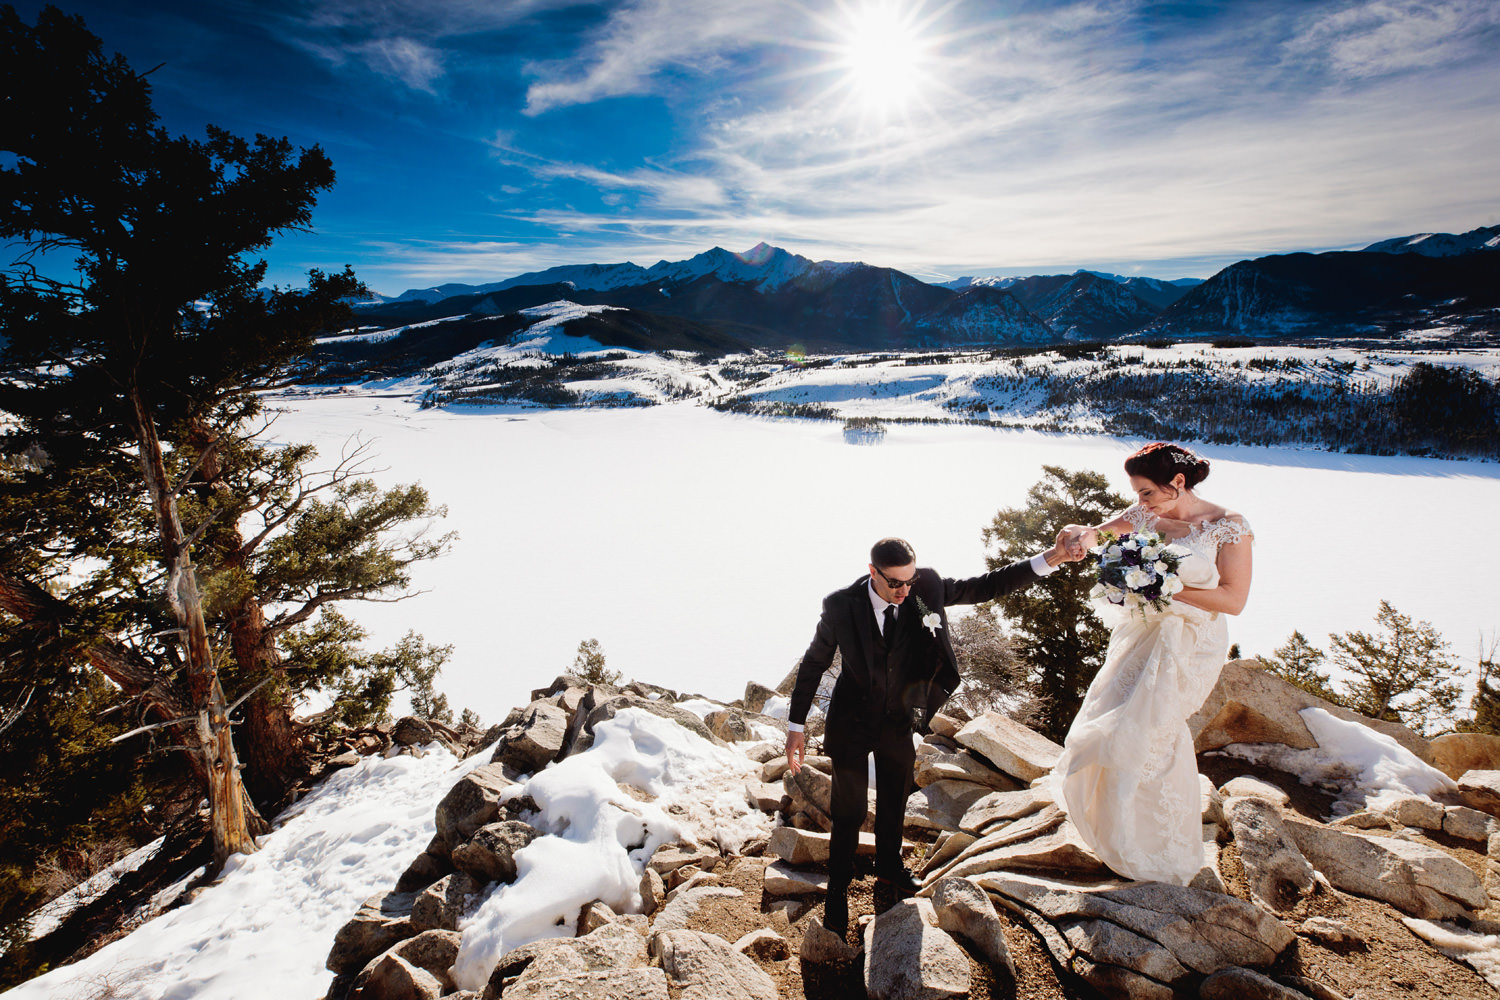 groom helps bride down rocky terrain captured by sapphire point wedding photographer tomKphoto